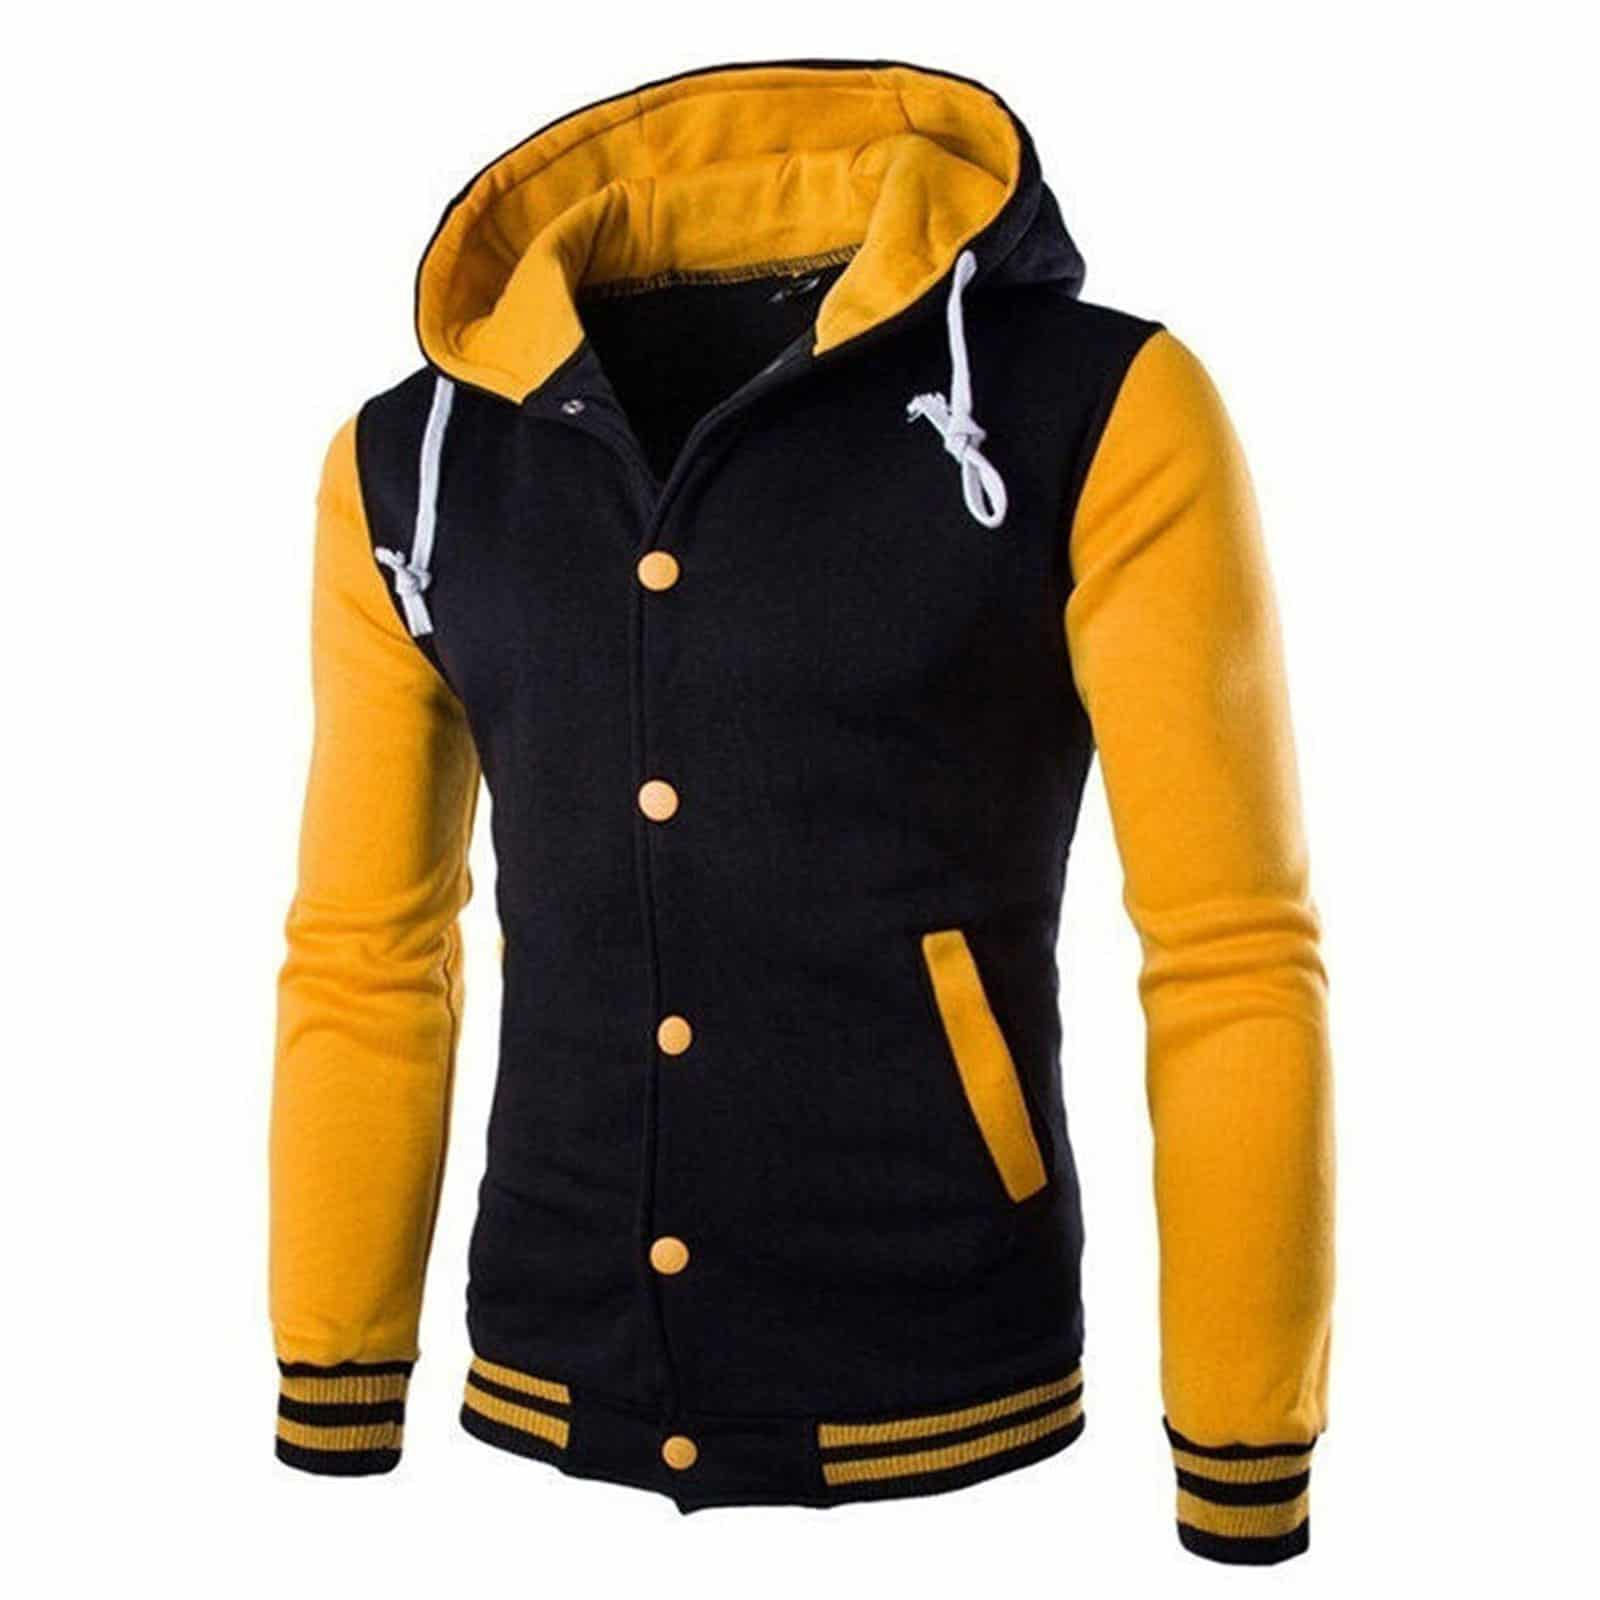 Unisex Varsity Style Fashion Letterman Baseball Jacket Yellow Kilt And Jacks